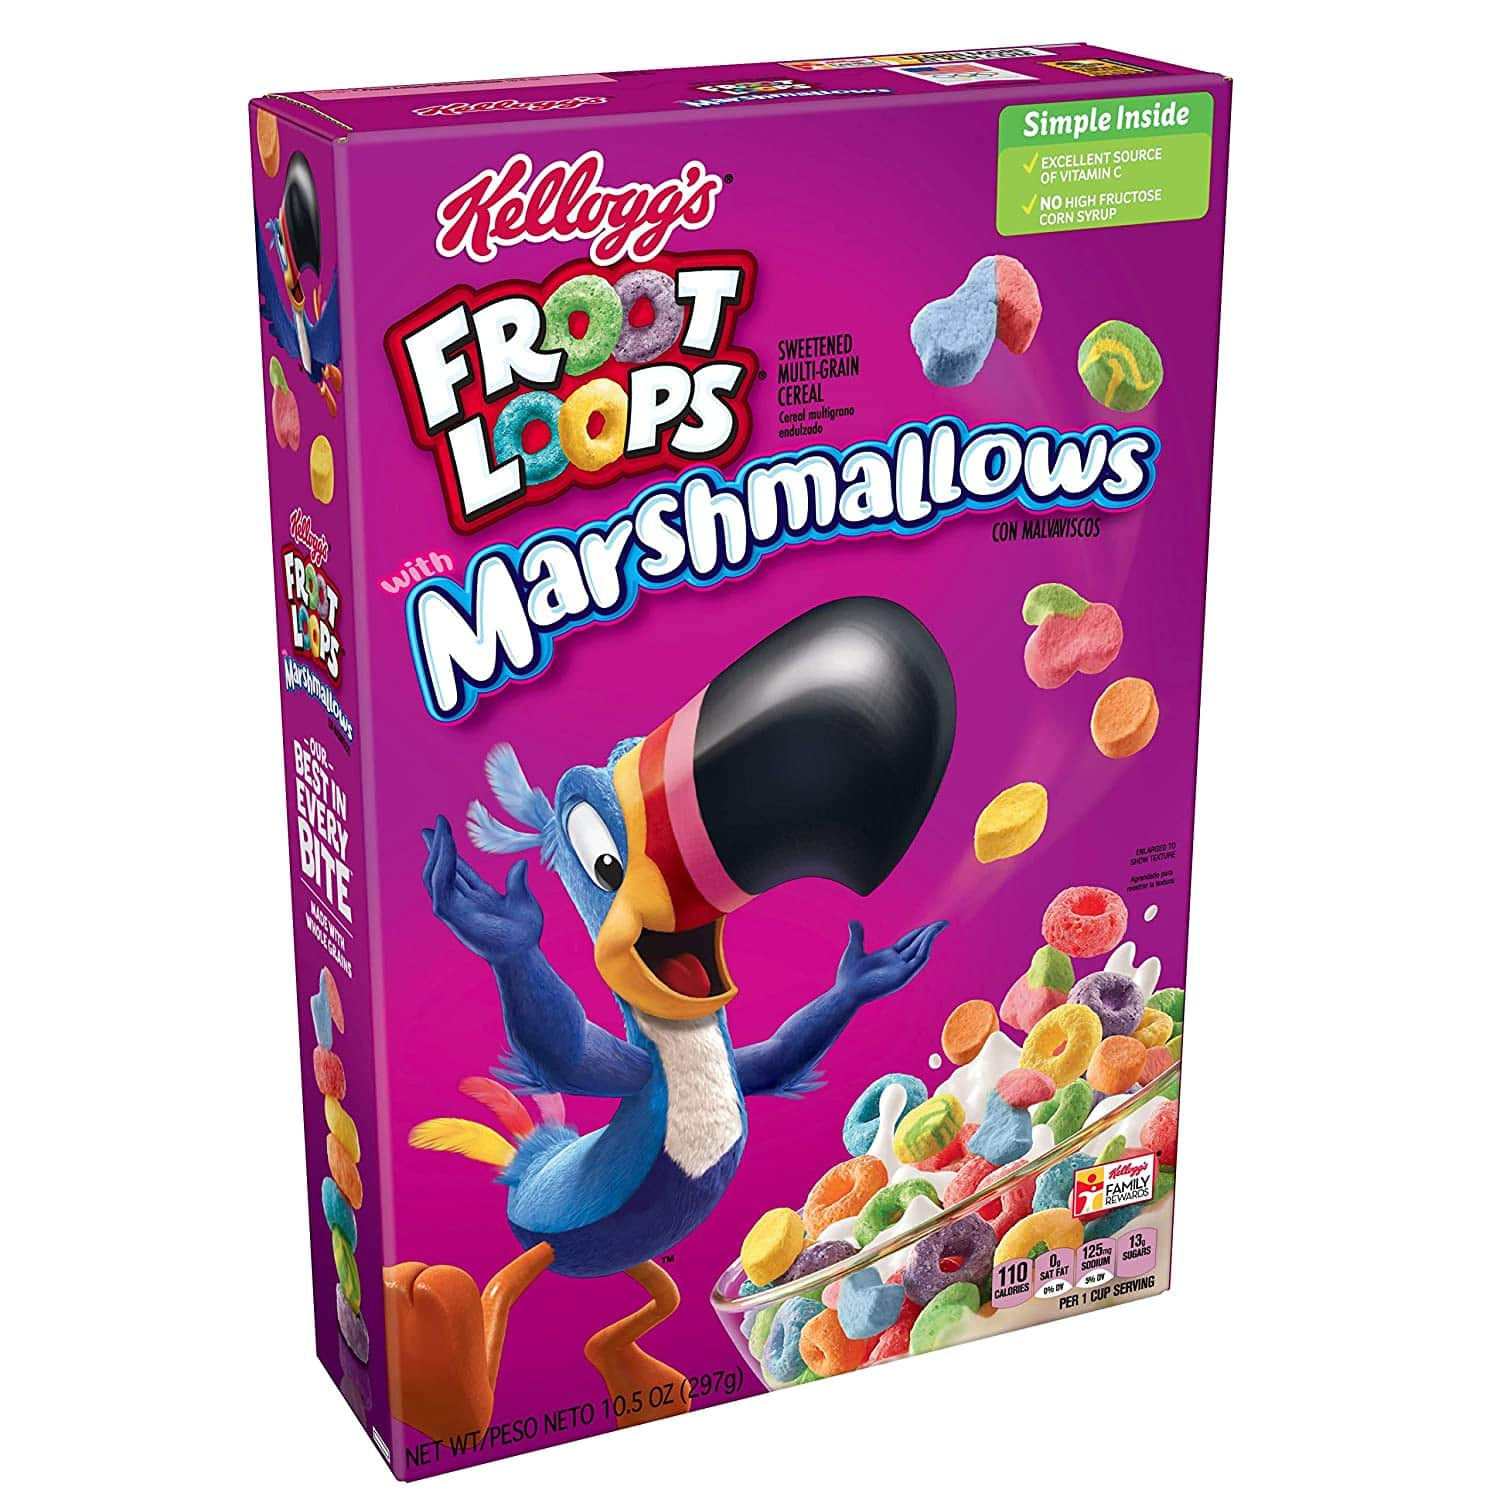 Kelloggs Froot Loops Breakfast Cereal with Fruity Shaped Marshmallows, 10.5 oz Box for $1.88 @ Amazon